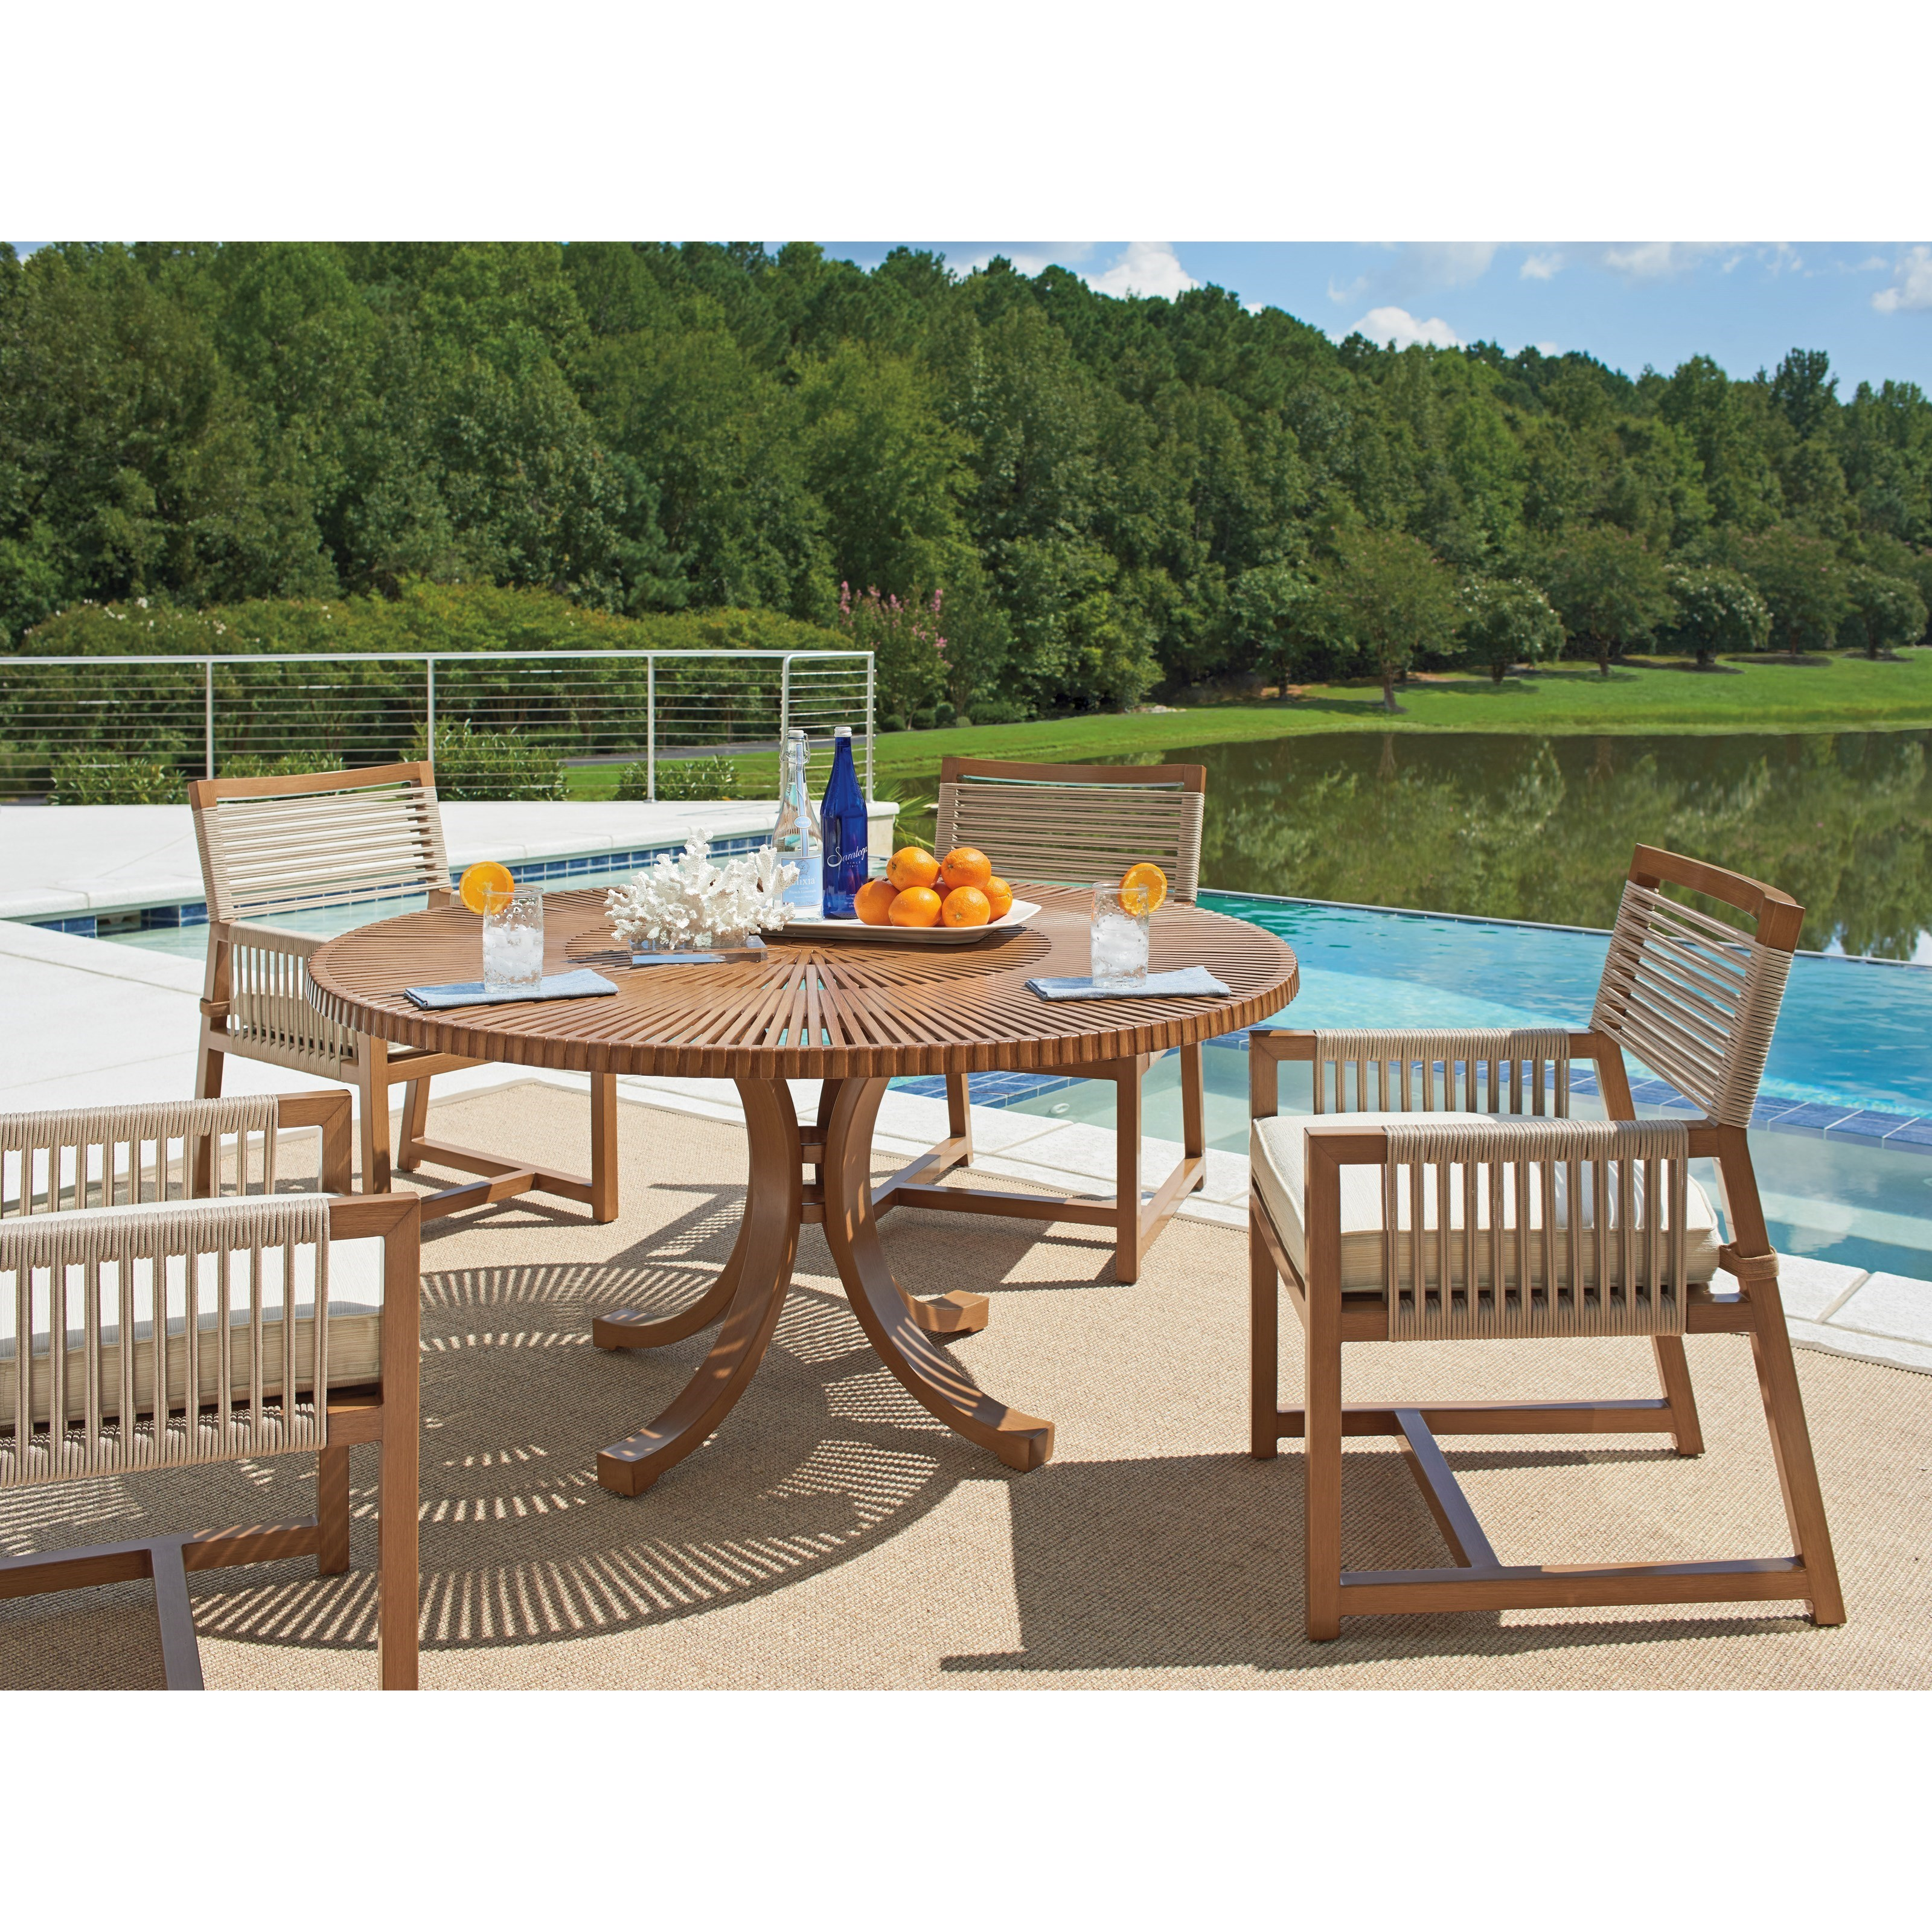 St Tropez 5-Piece Outdoor Dining Set by Tommy Bahama Outdoor Living at Baer's Furniture